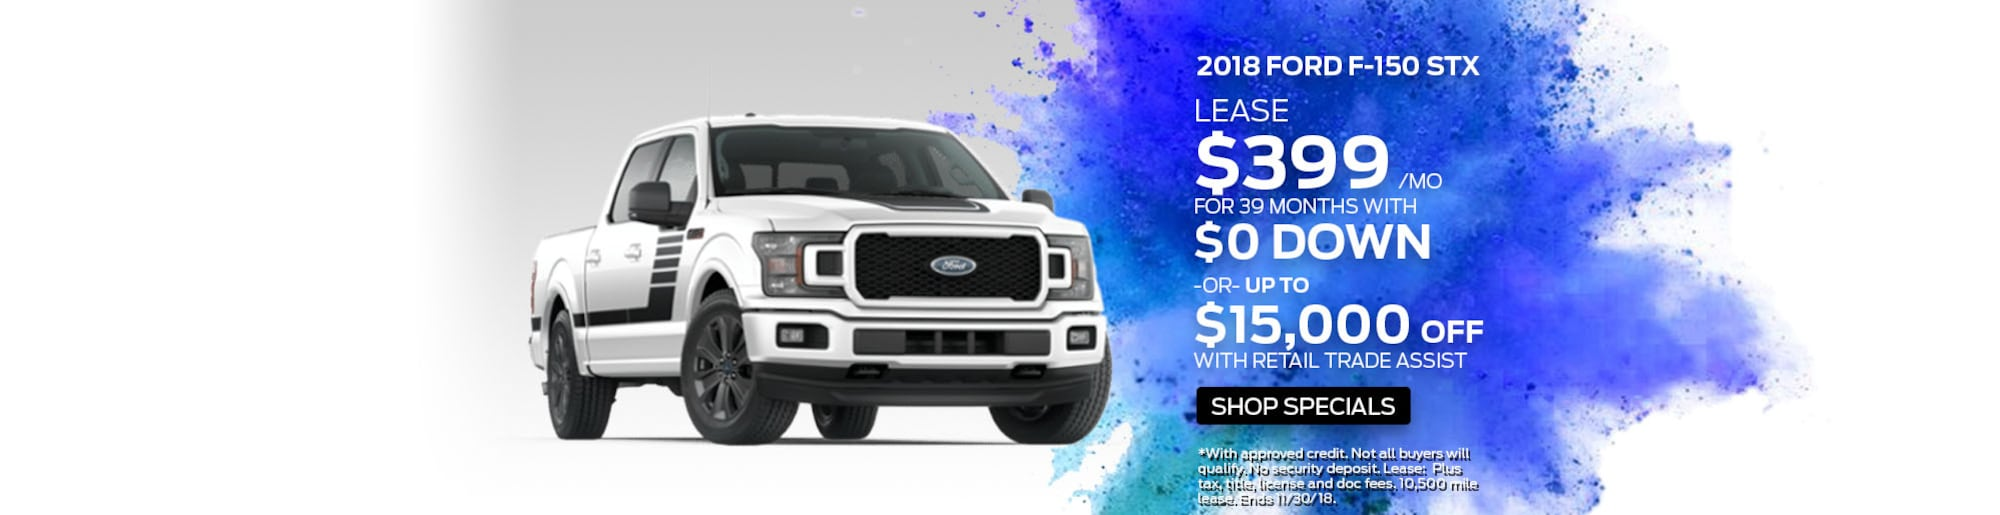 Welcome To Germain Ford Of Columbus Ohio Sales 1980 F150 Truck Brush Guards New Specials